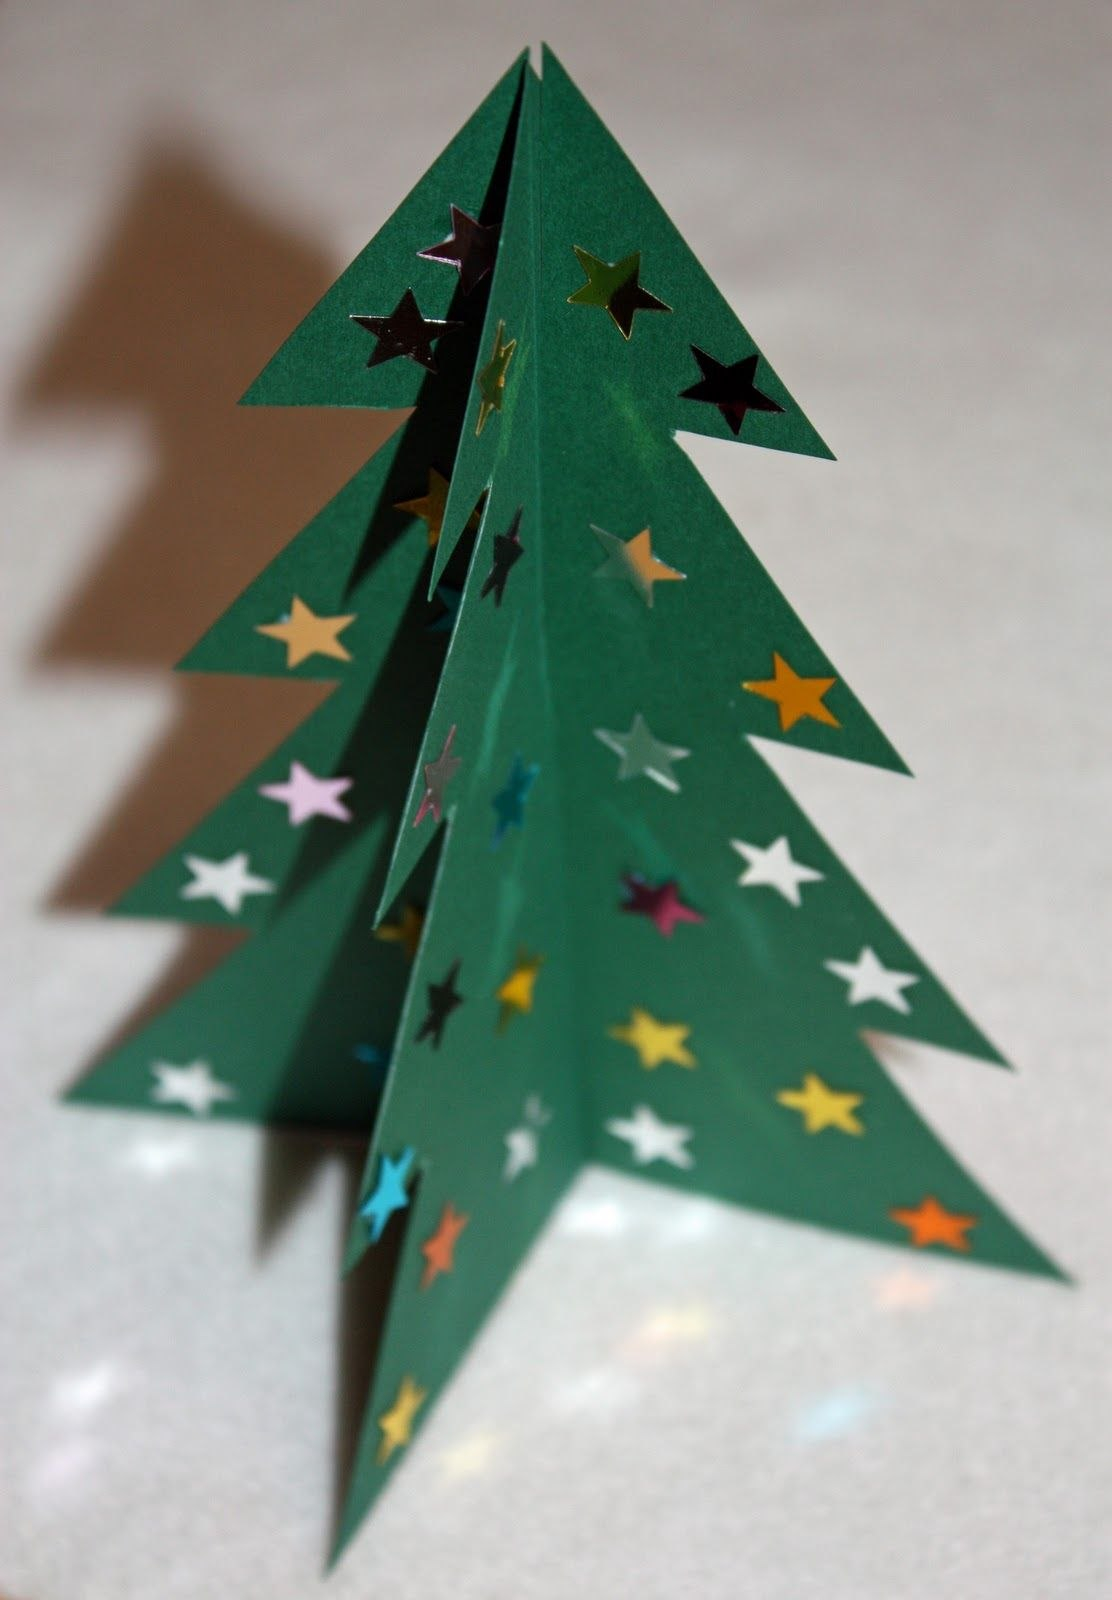 Make A D Card Christmas Tree  With Printable Template We Did This Pertaining To 3D Christmas Tree Card Template